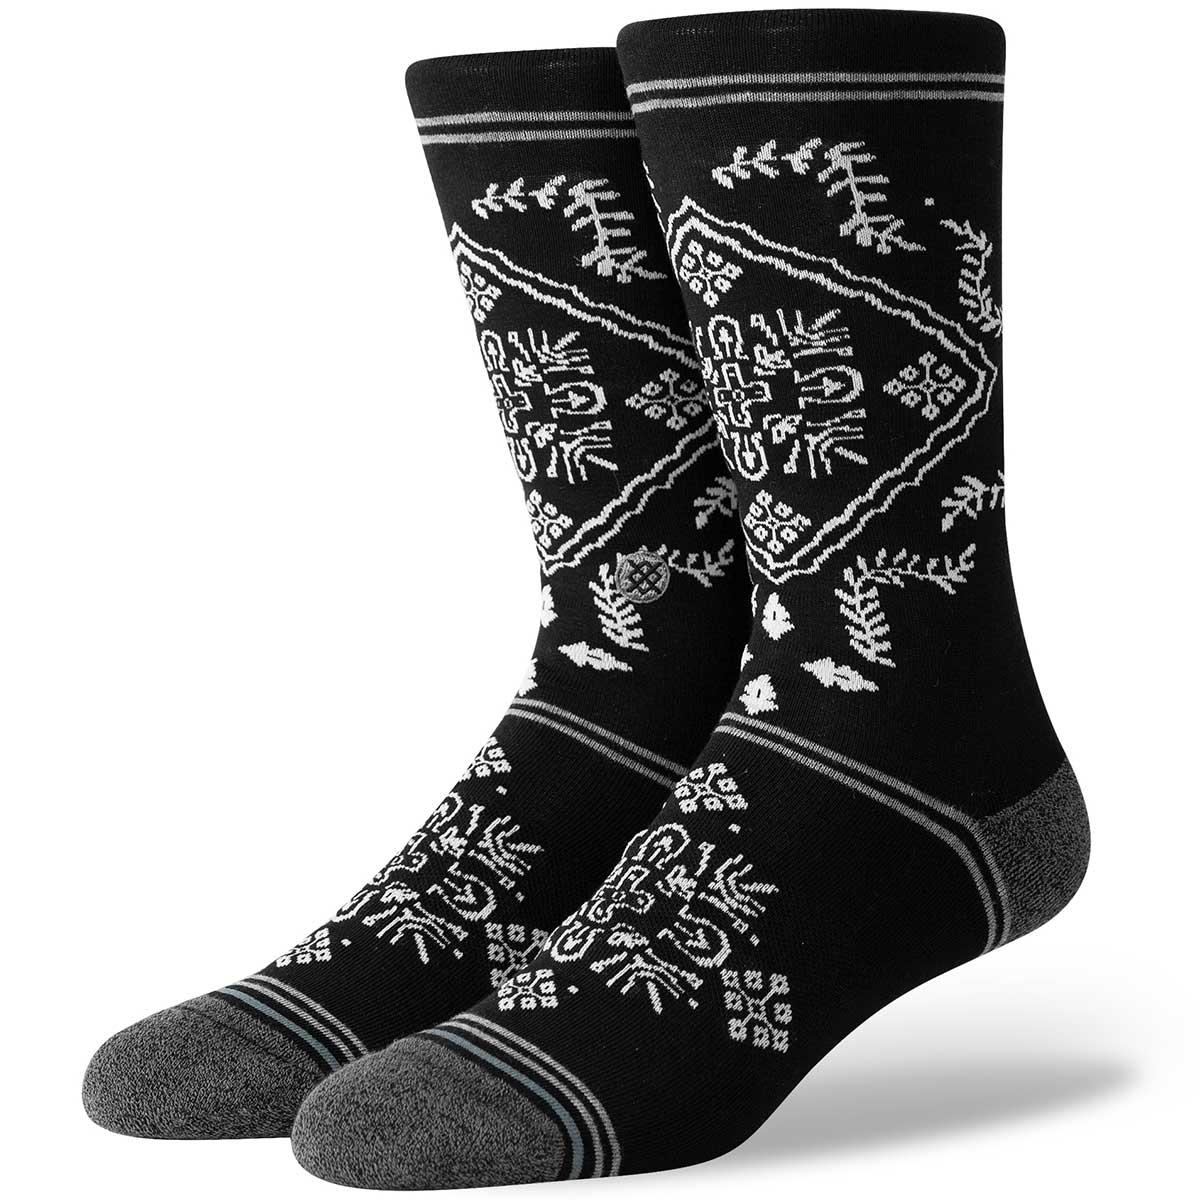 Stance Bandana sock in Black